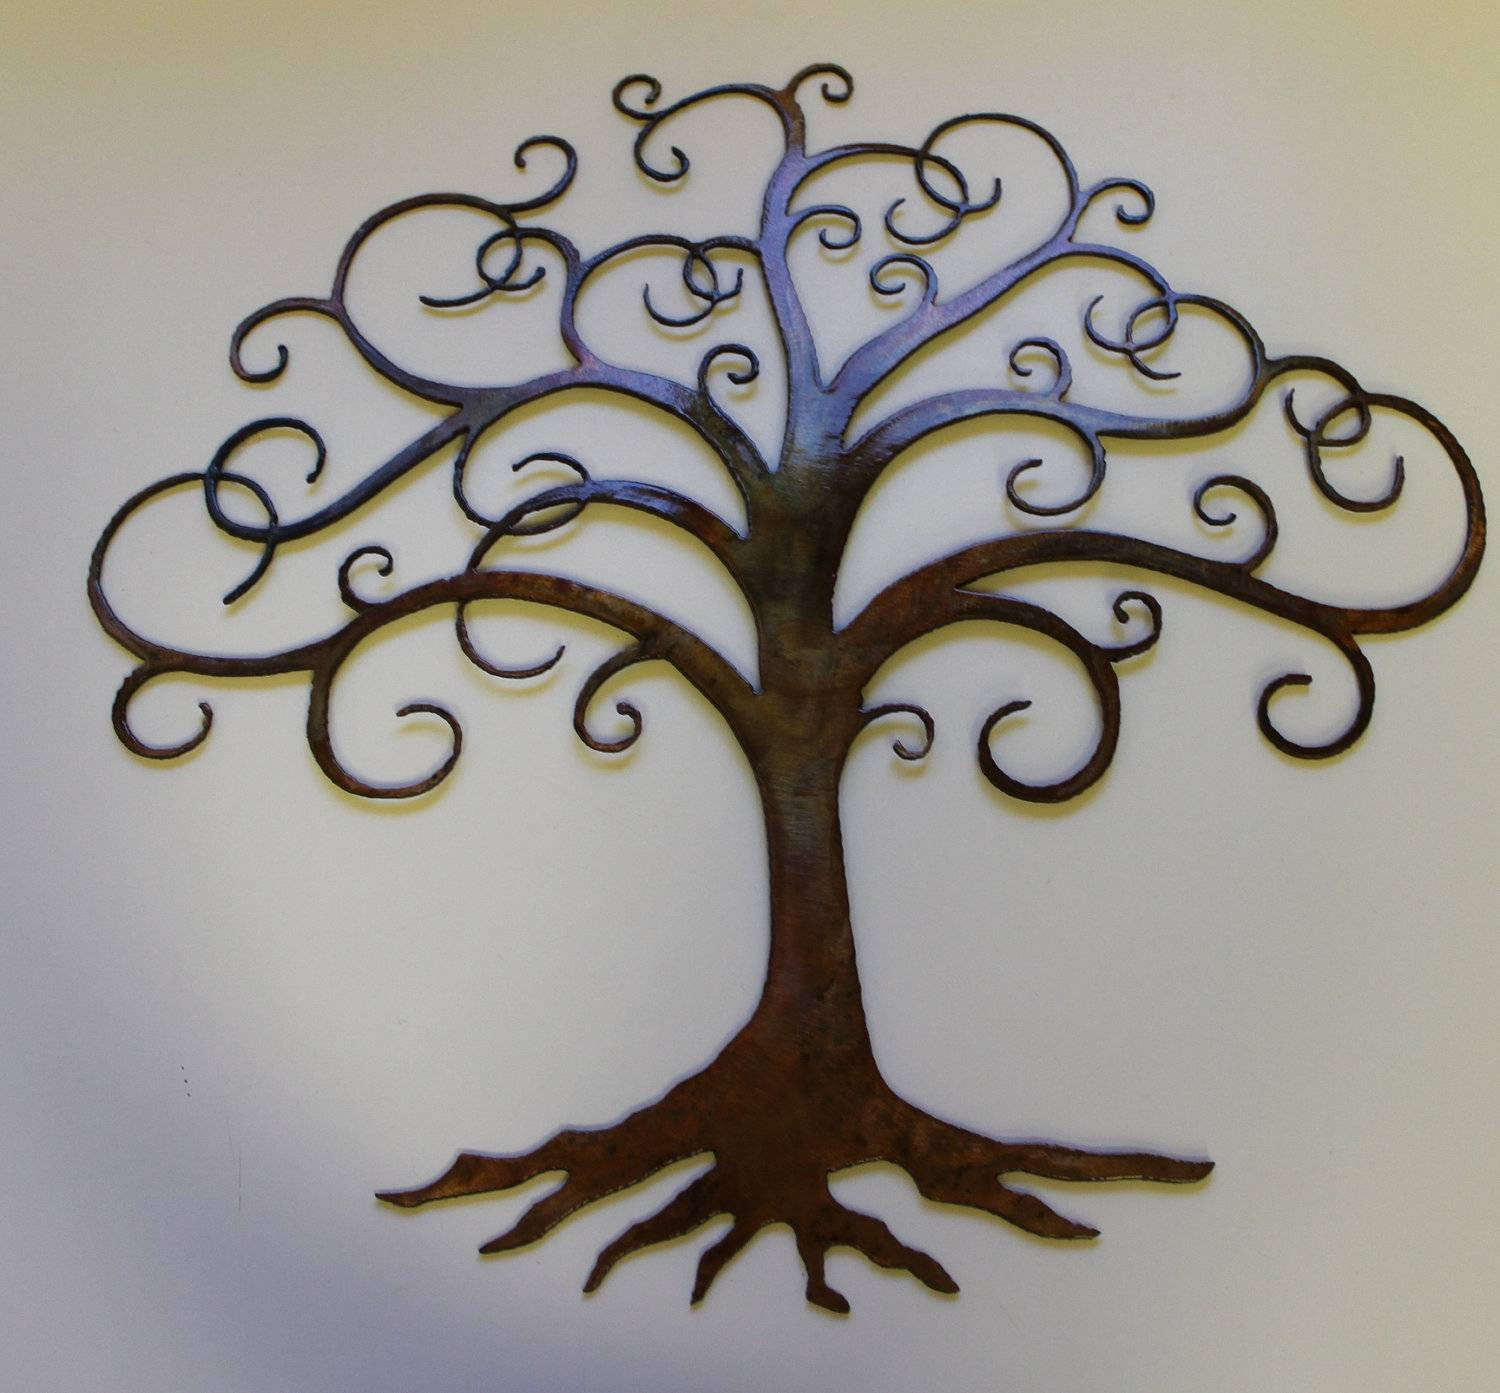 Wall Art Designs: Metal Wall Art Trees Black Metal Wall Art Olive Throughout Most Recent Black Metal Wall Art Decor (View 19 of 20)